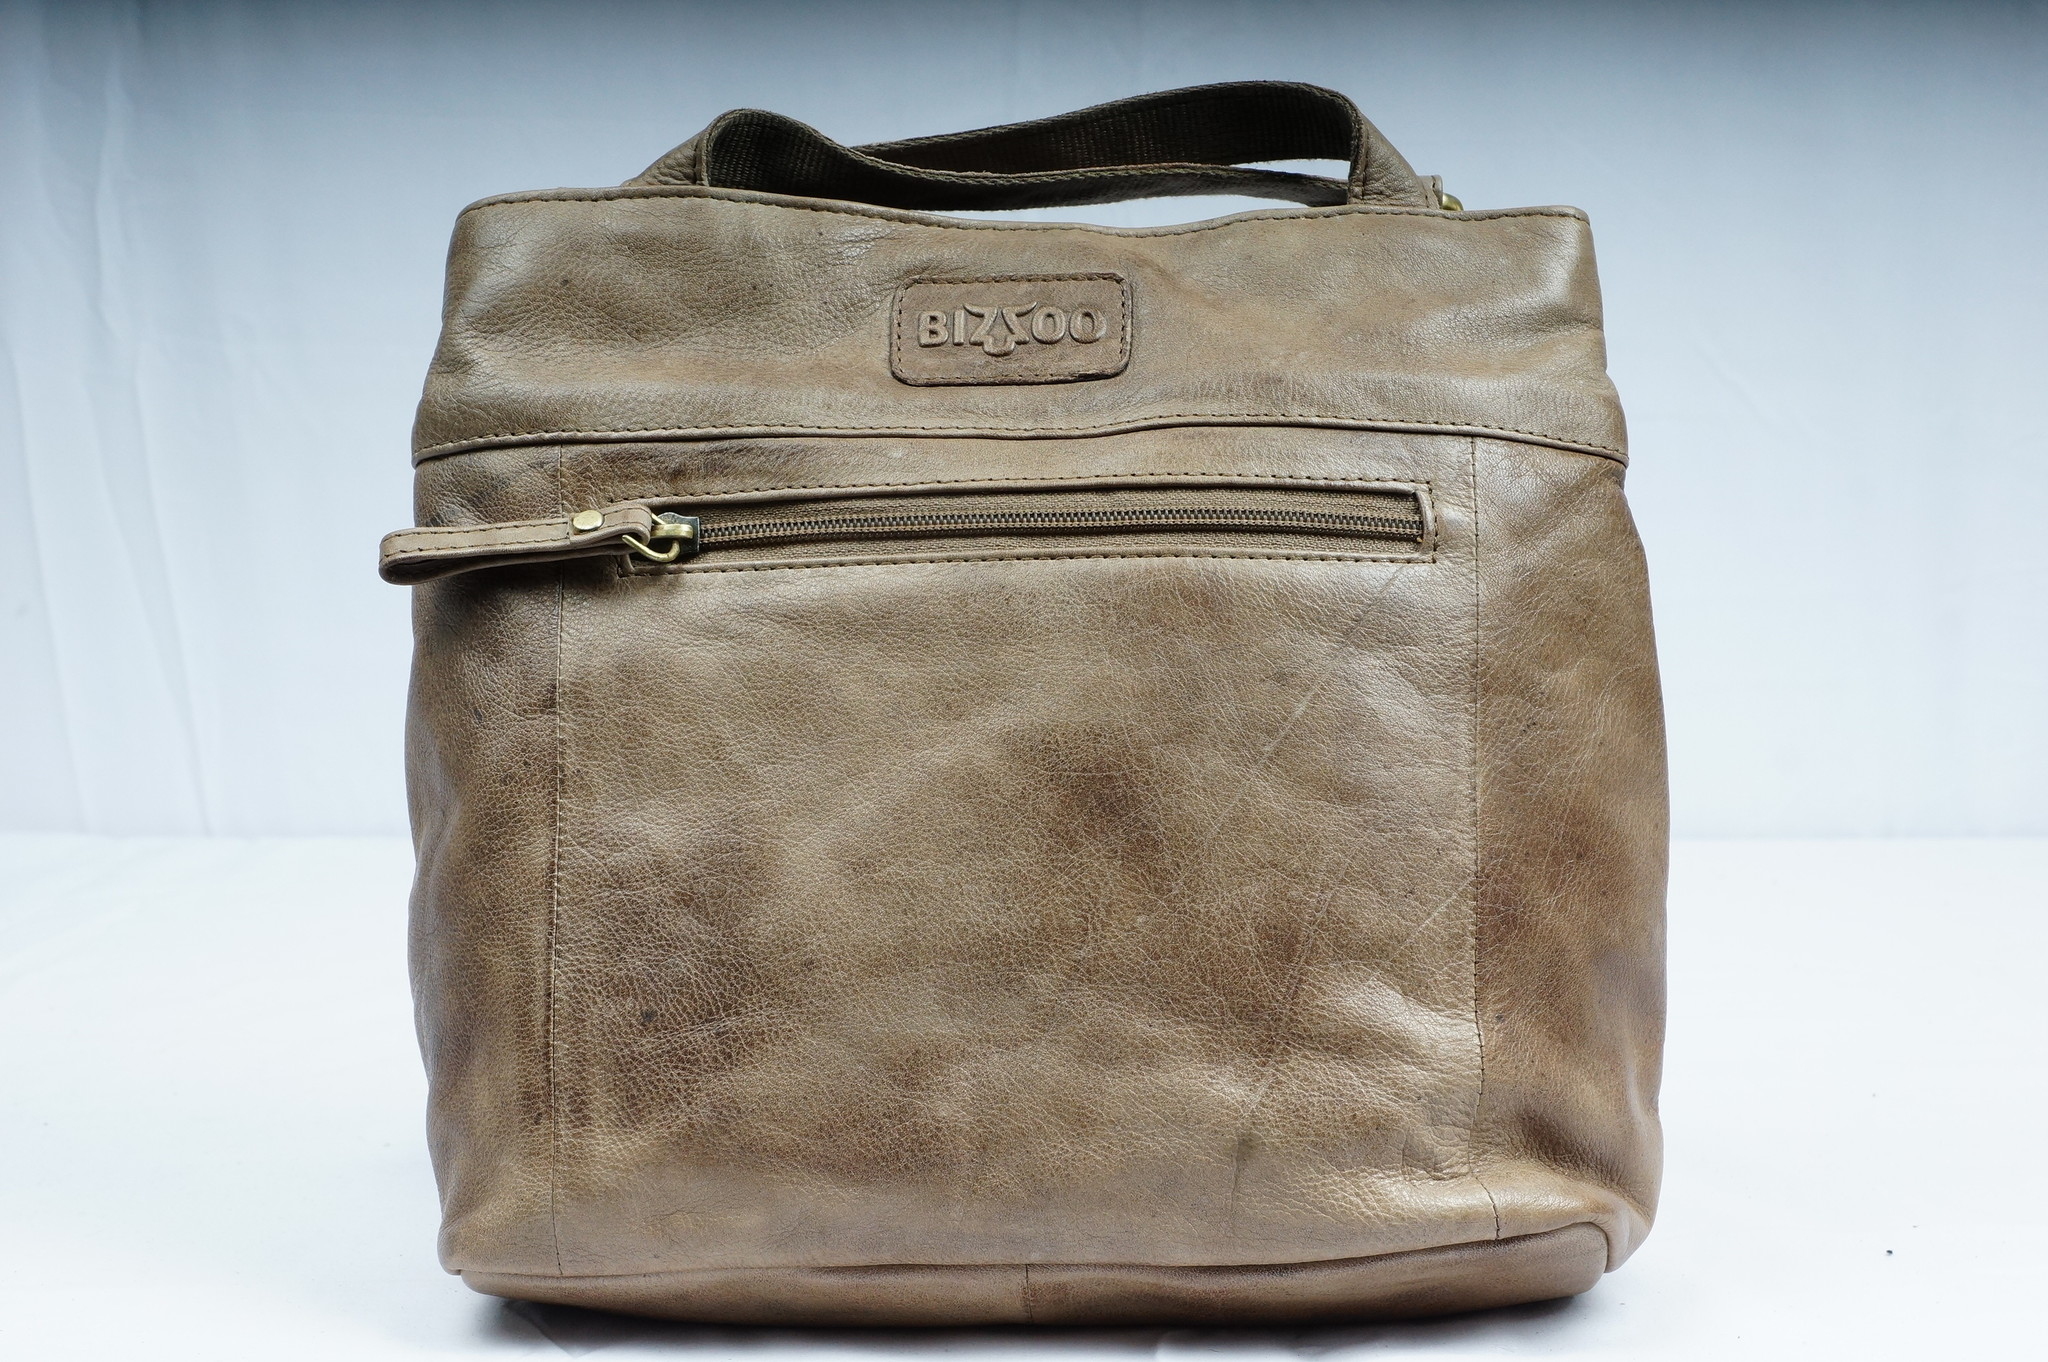 Bizzoo Bizzoo backpack and shopper taupe